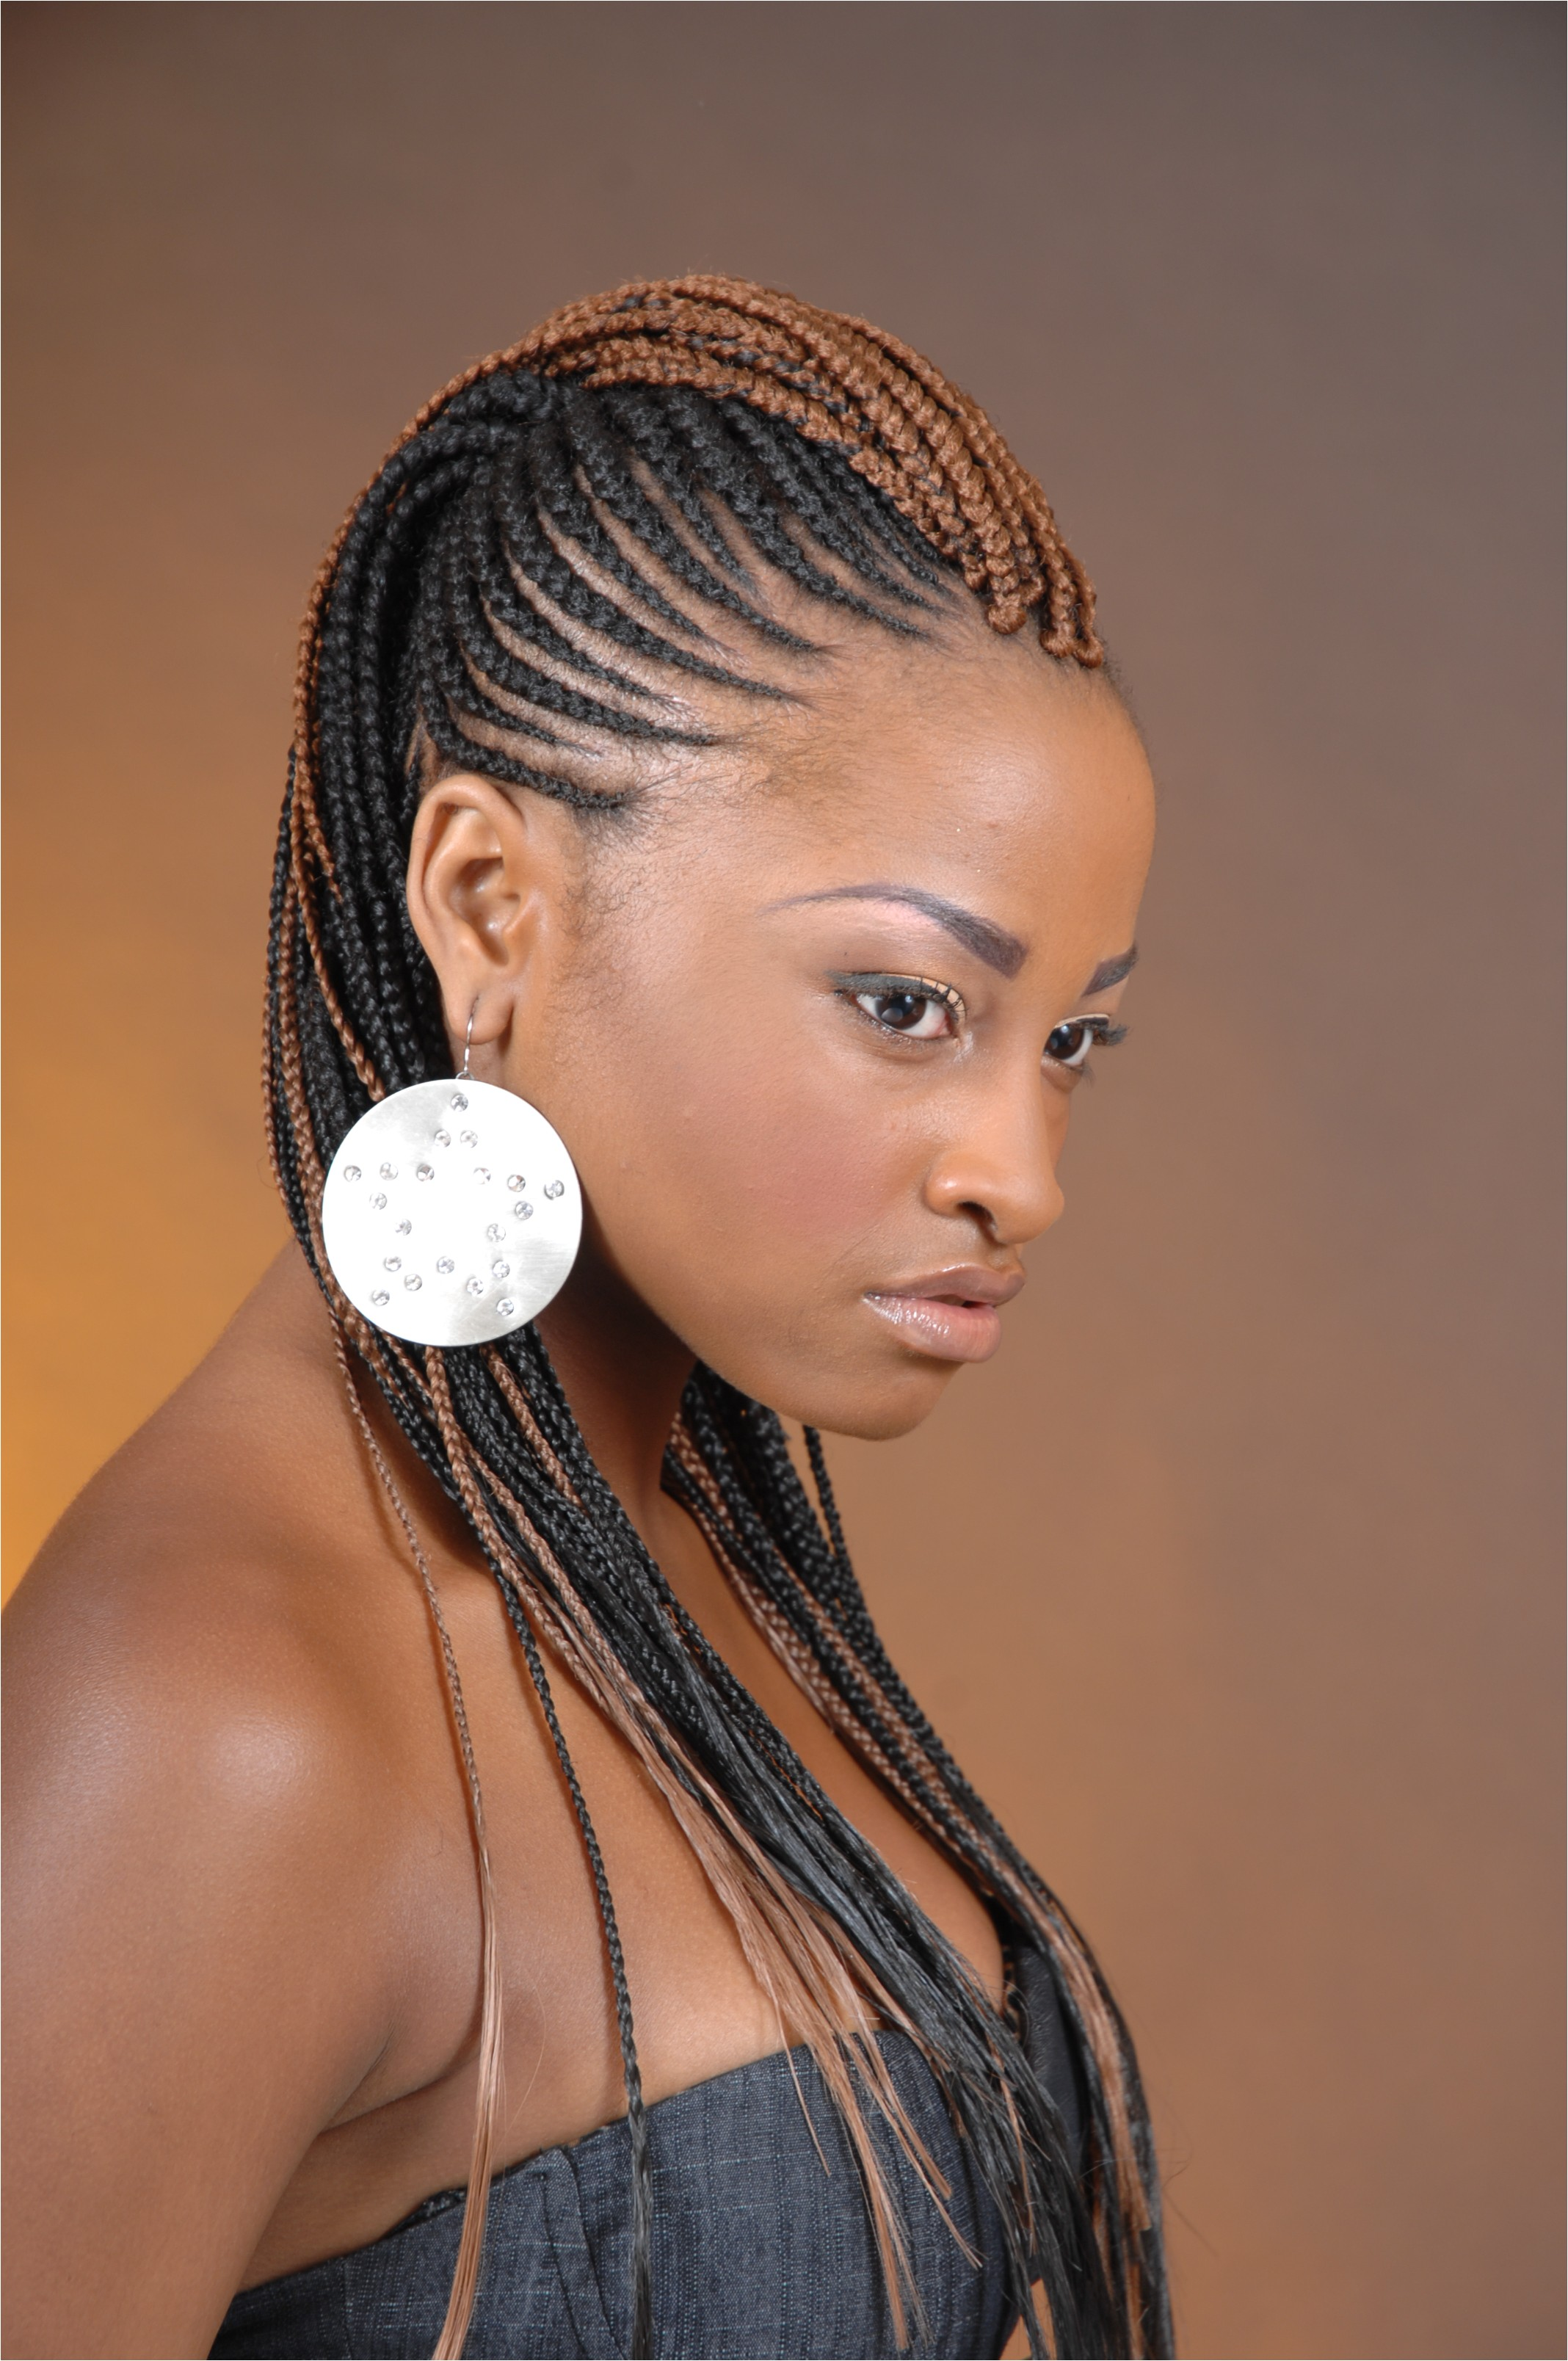 Black Hairstyles with Braiding Hair 20 Cool Black Hairstyles Braids Ideas Magment